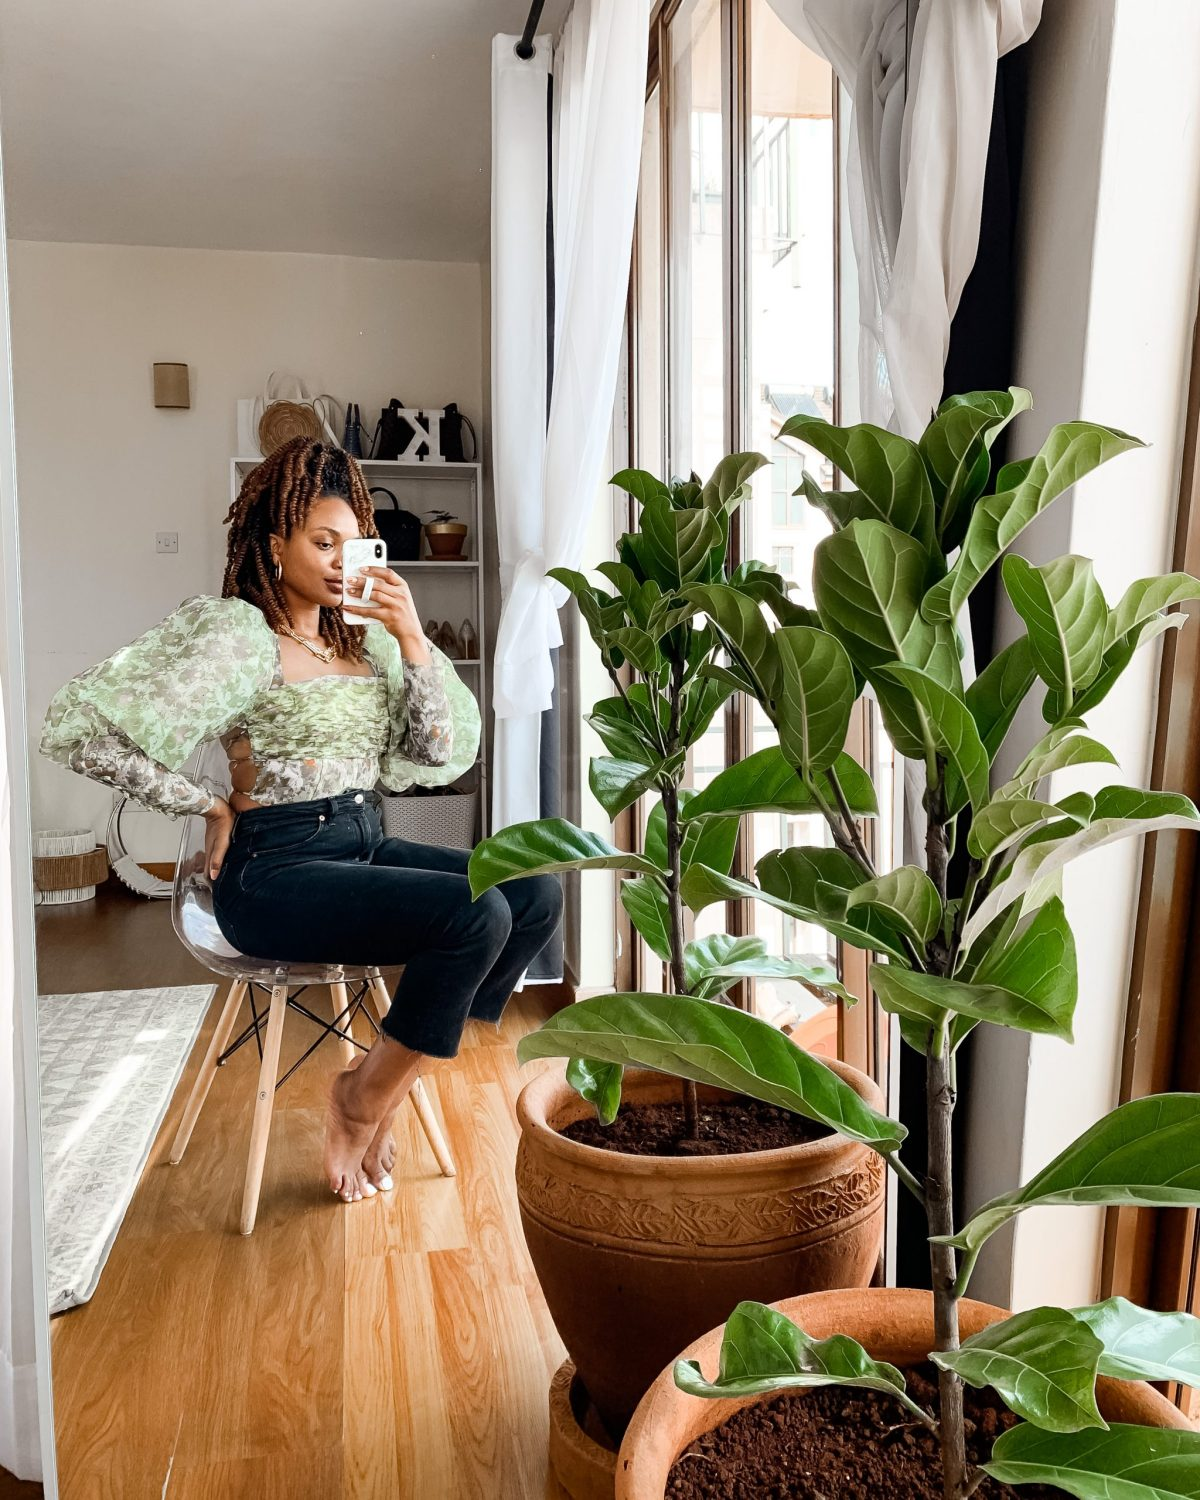 Ijeoma Kola wearing AU Gold Top with a fiddle leaf fig plant